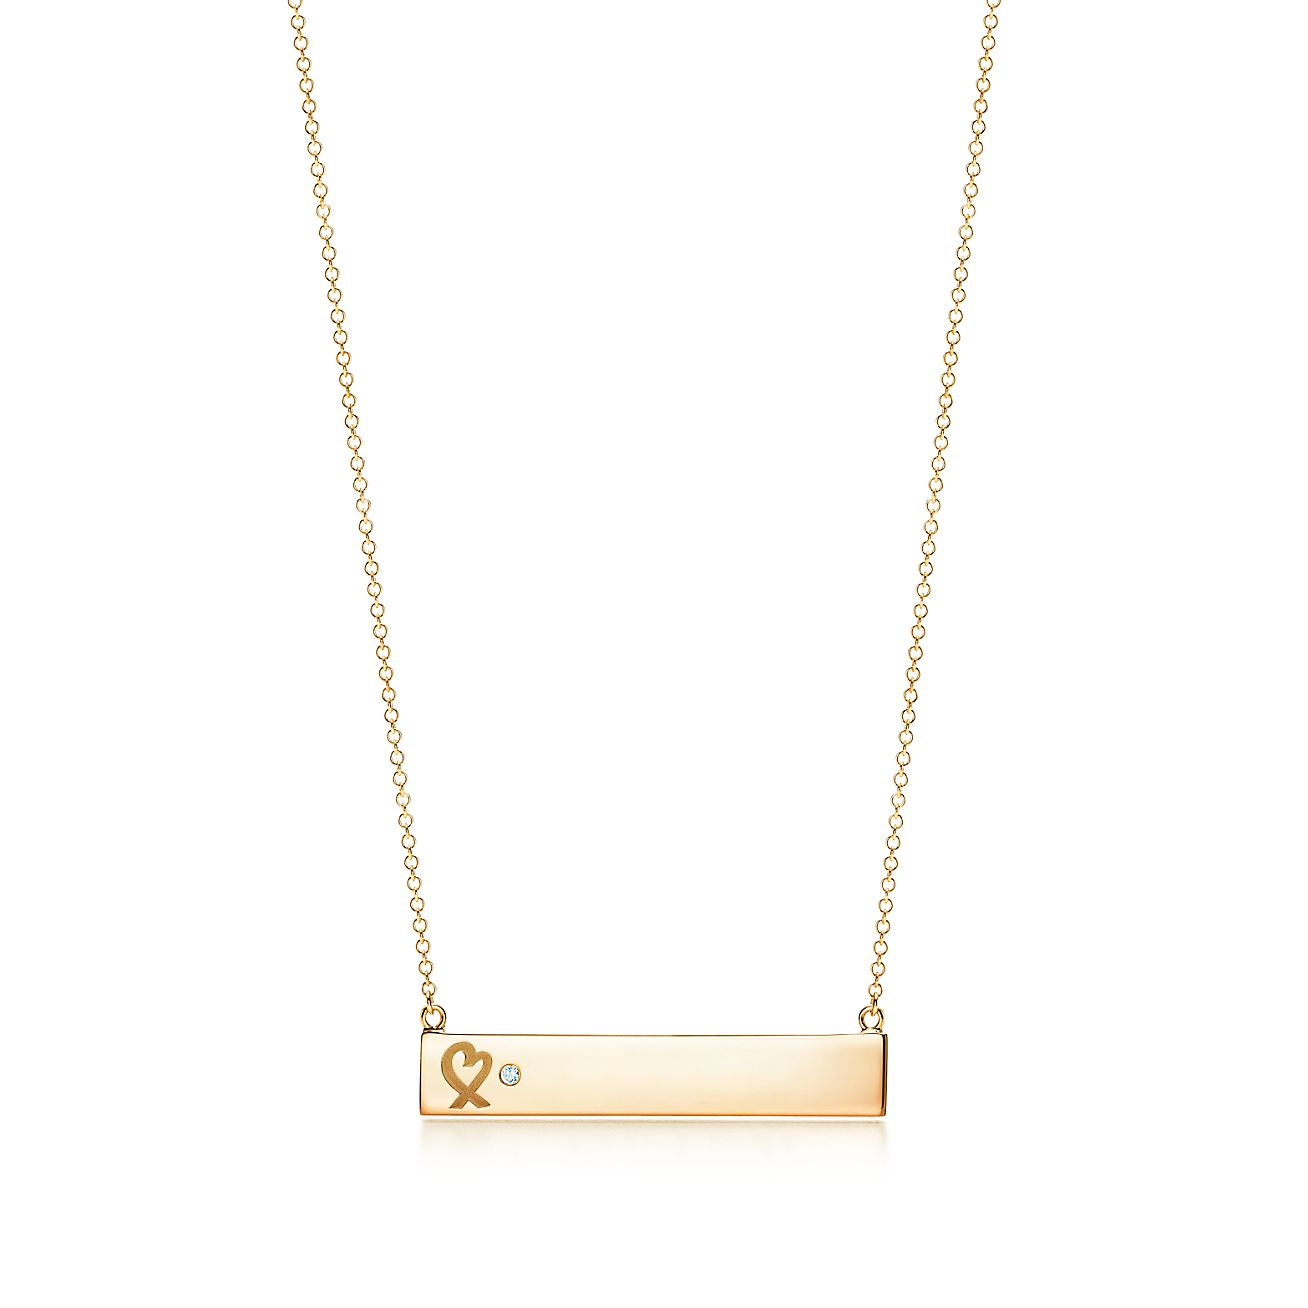 Paloma picasso loving heart bar pendant in 18k gold with a diamond paloma picassoloving heart bar pendant aloadofball Image collections